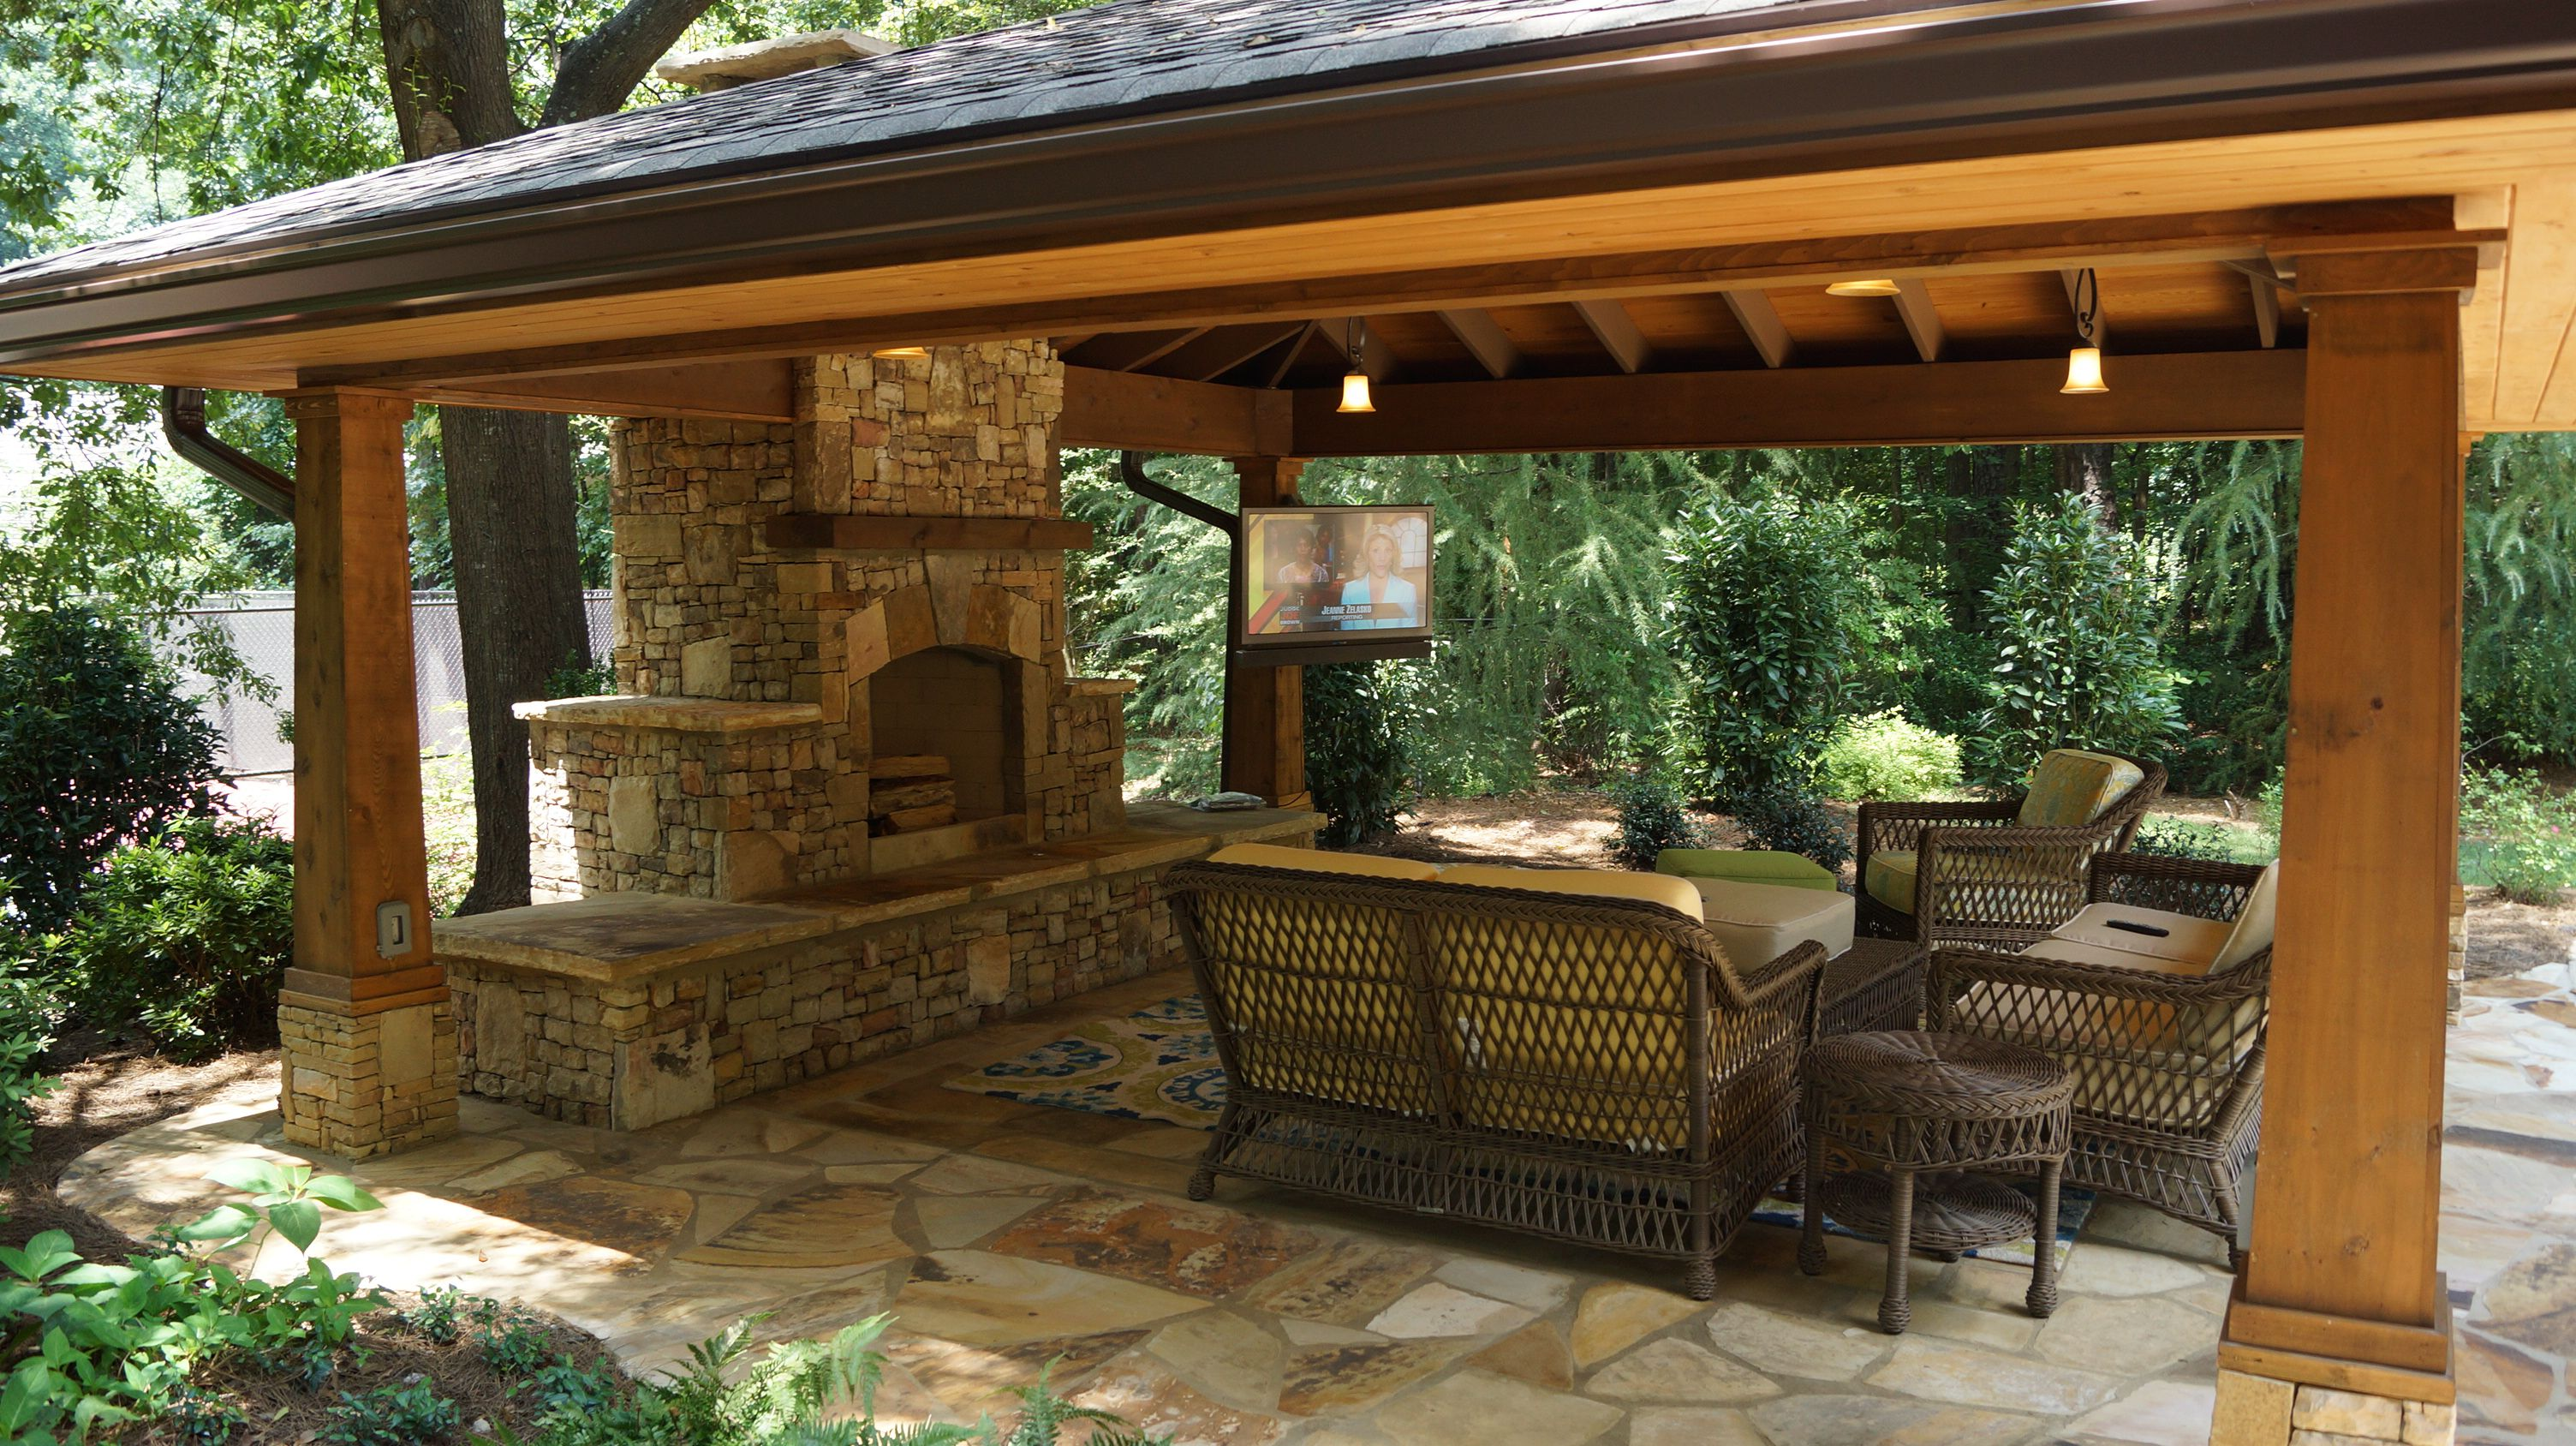 Outdoor Living Spaces with Water Feature and Greens ... on Garden Living Space id=66386